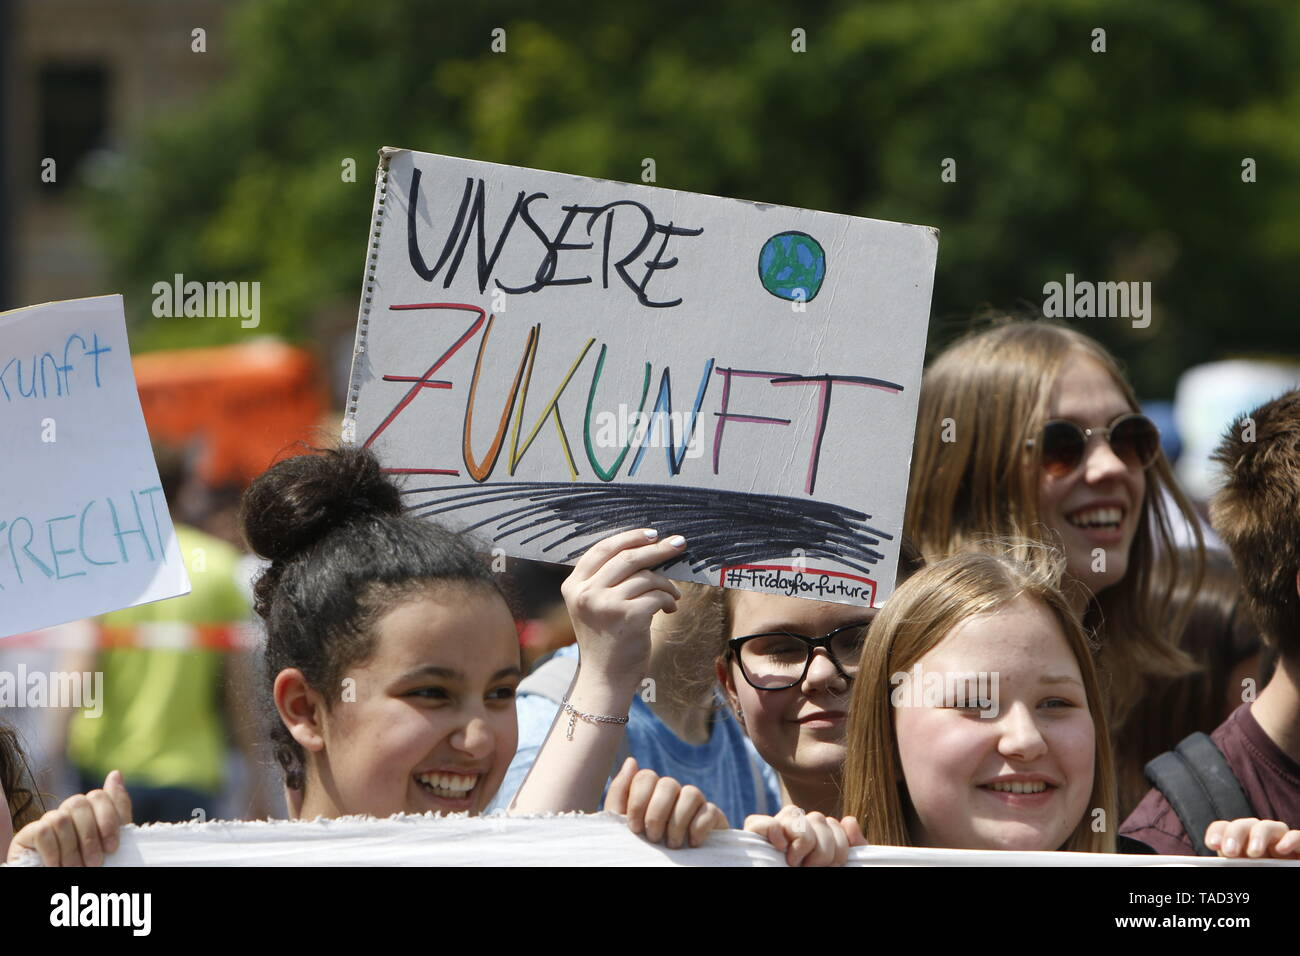 Frankfurt, Germany. 24th May 2019. A protester carries a sign that reads 'Our Future'. Around 4,500 young people marched through Frankfurt to the European Central Bank, to protest against the climate change and for the introduction of measurements against it. The protest took place as part of an Europe wide climate strike, two days ahead of the 2019 European elections. - Stock Image